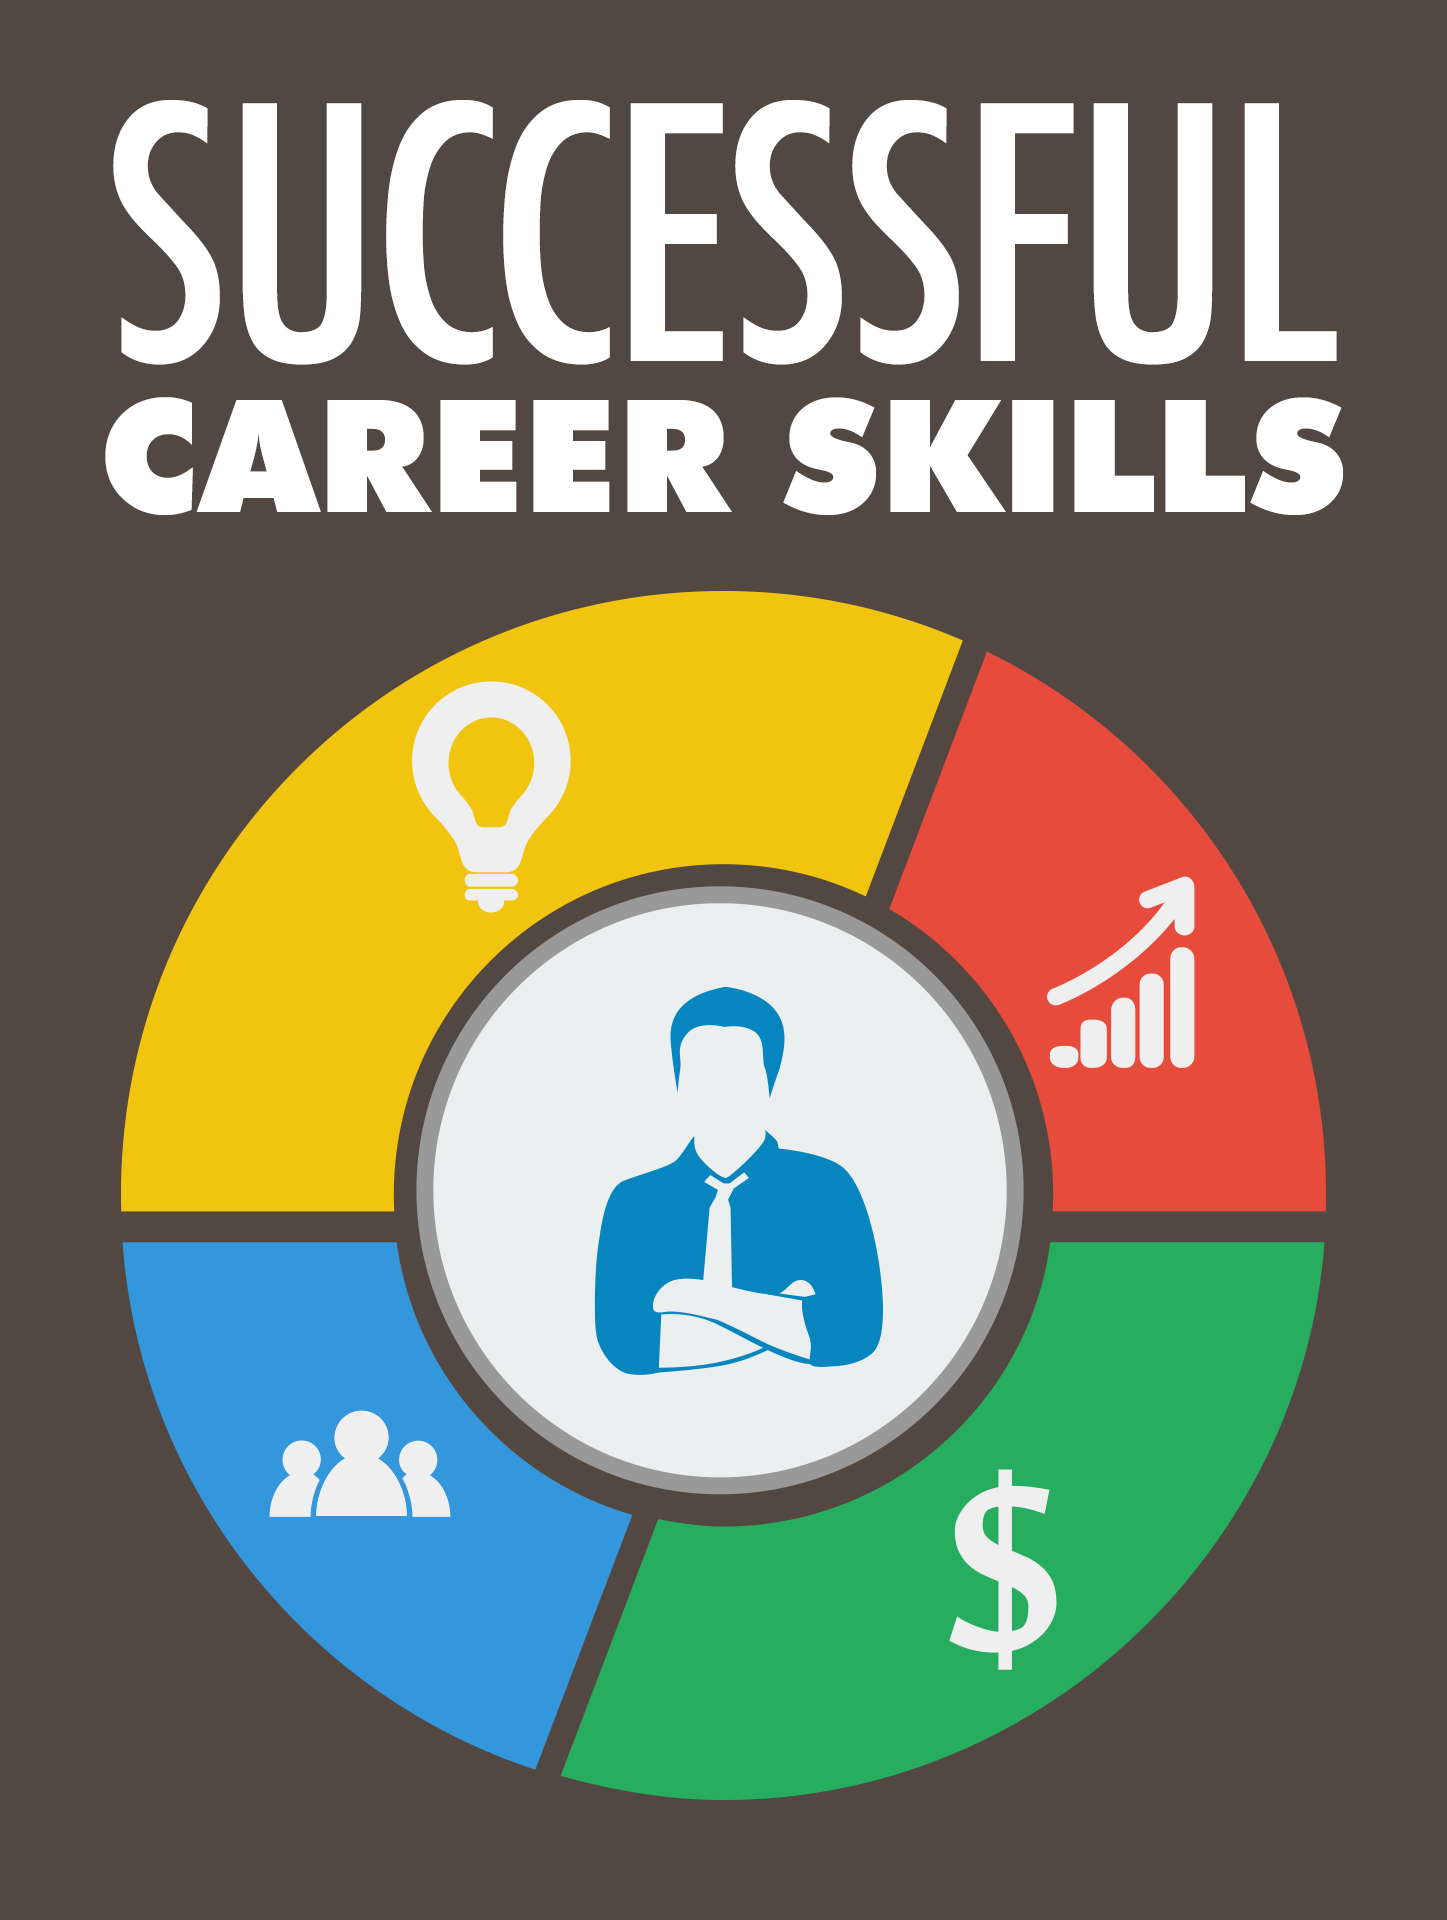 Successful Career Skills 1st time on SEO